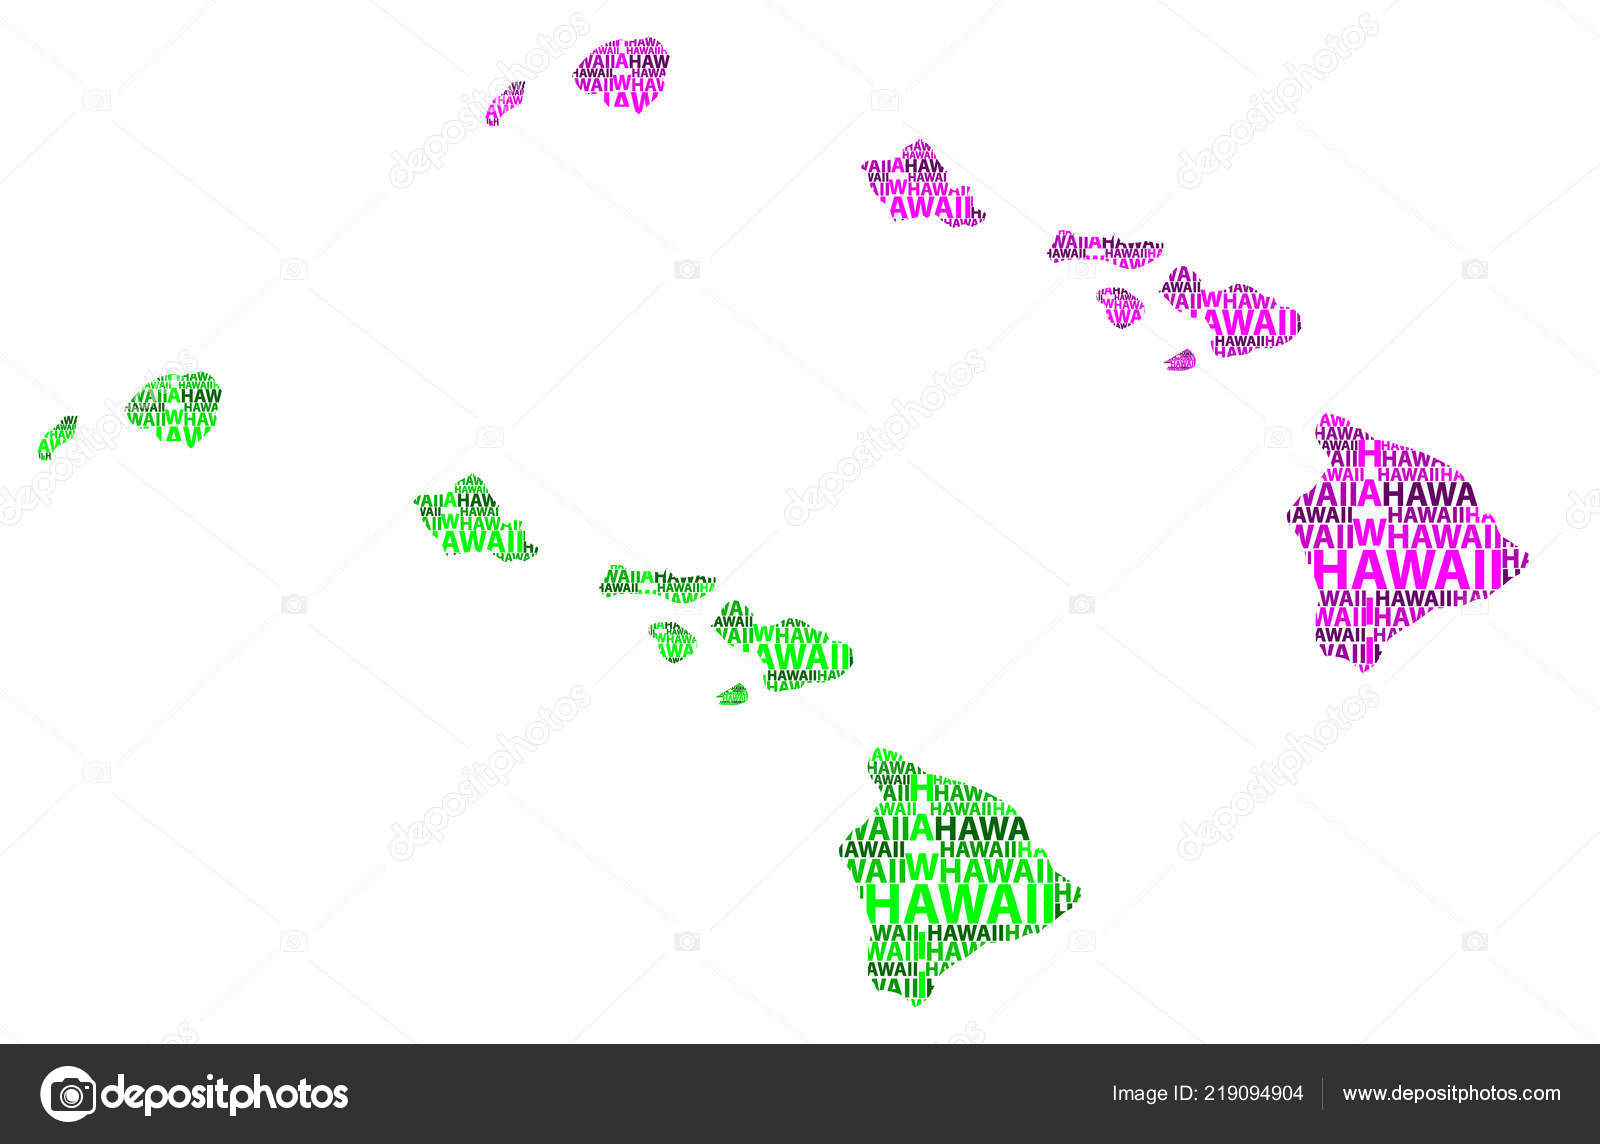 Sketch Hawaii United States America Letter Text Map Hawaii Map